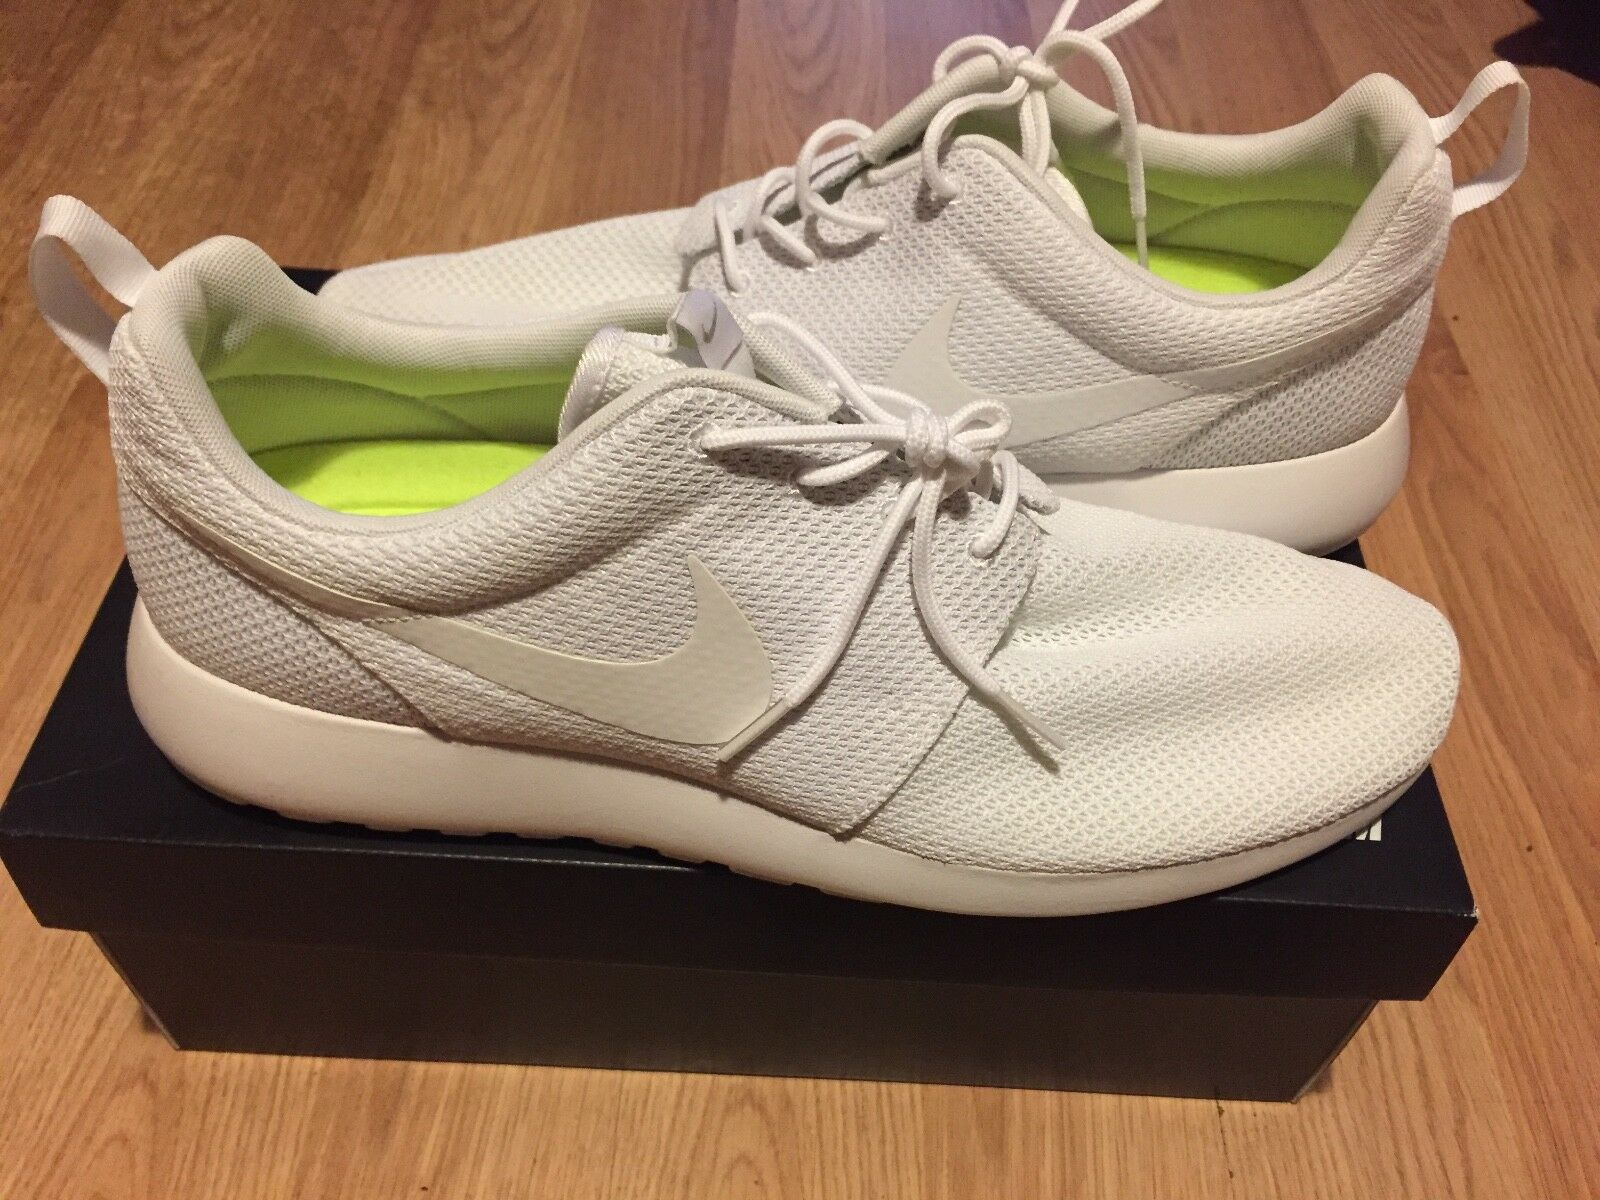 Brand New Nike Roshe Men's Size 14 All White Running Shoes